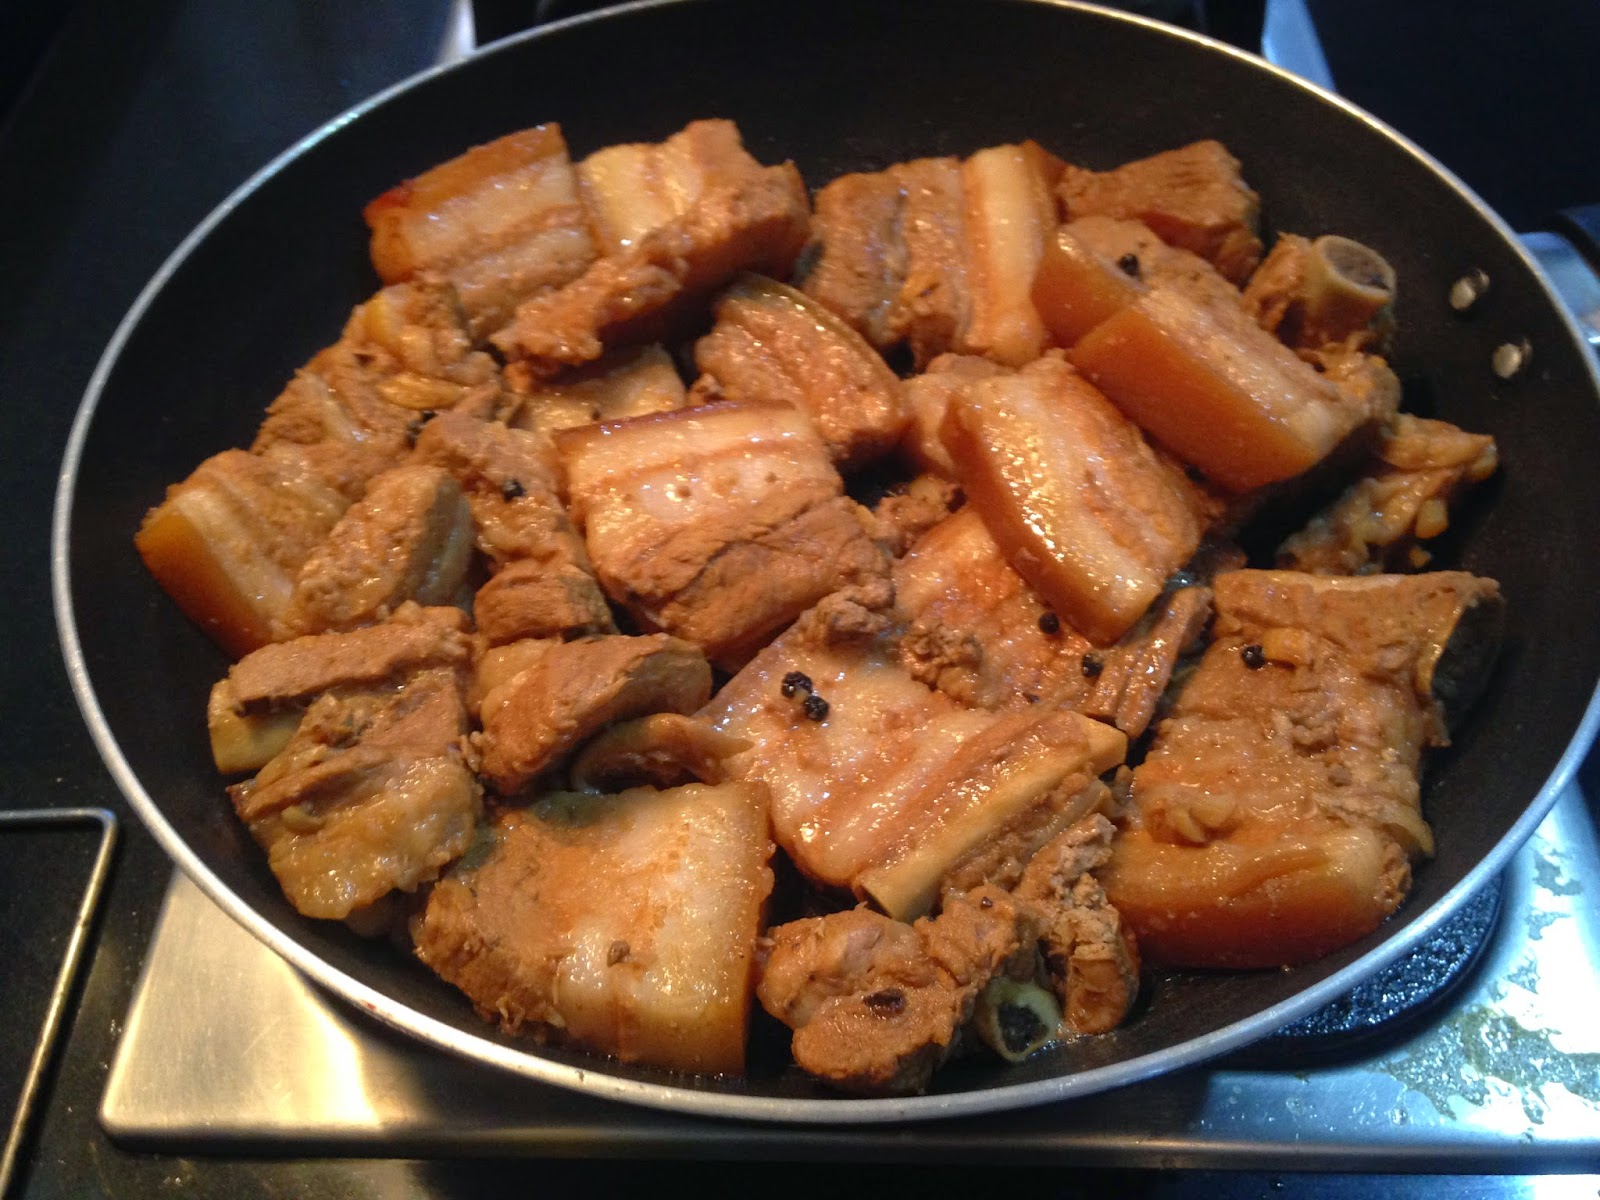 Cooking ng ina mo rin the philippines 1 food blog pork adobo recipe pork adobo recipe forumfinder Gallery